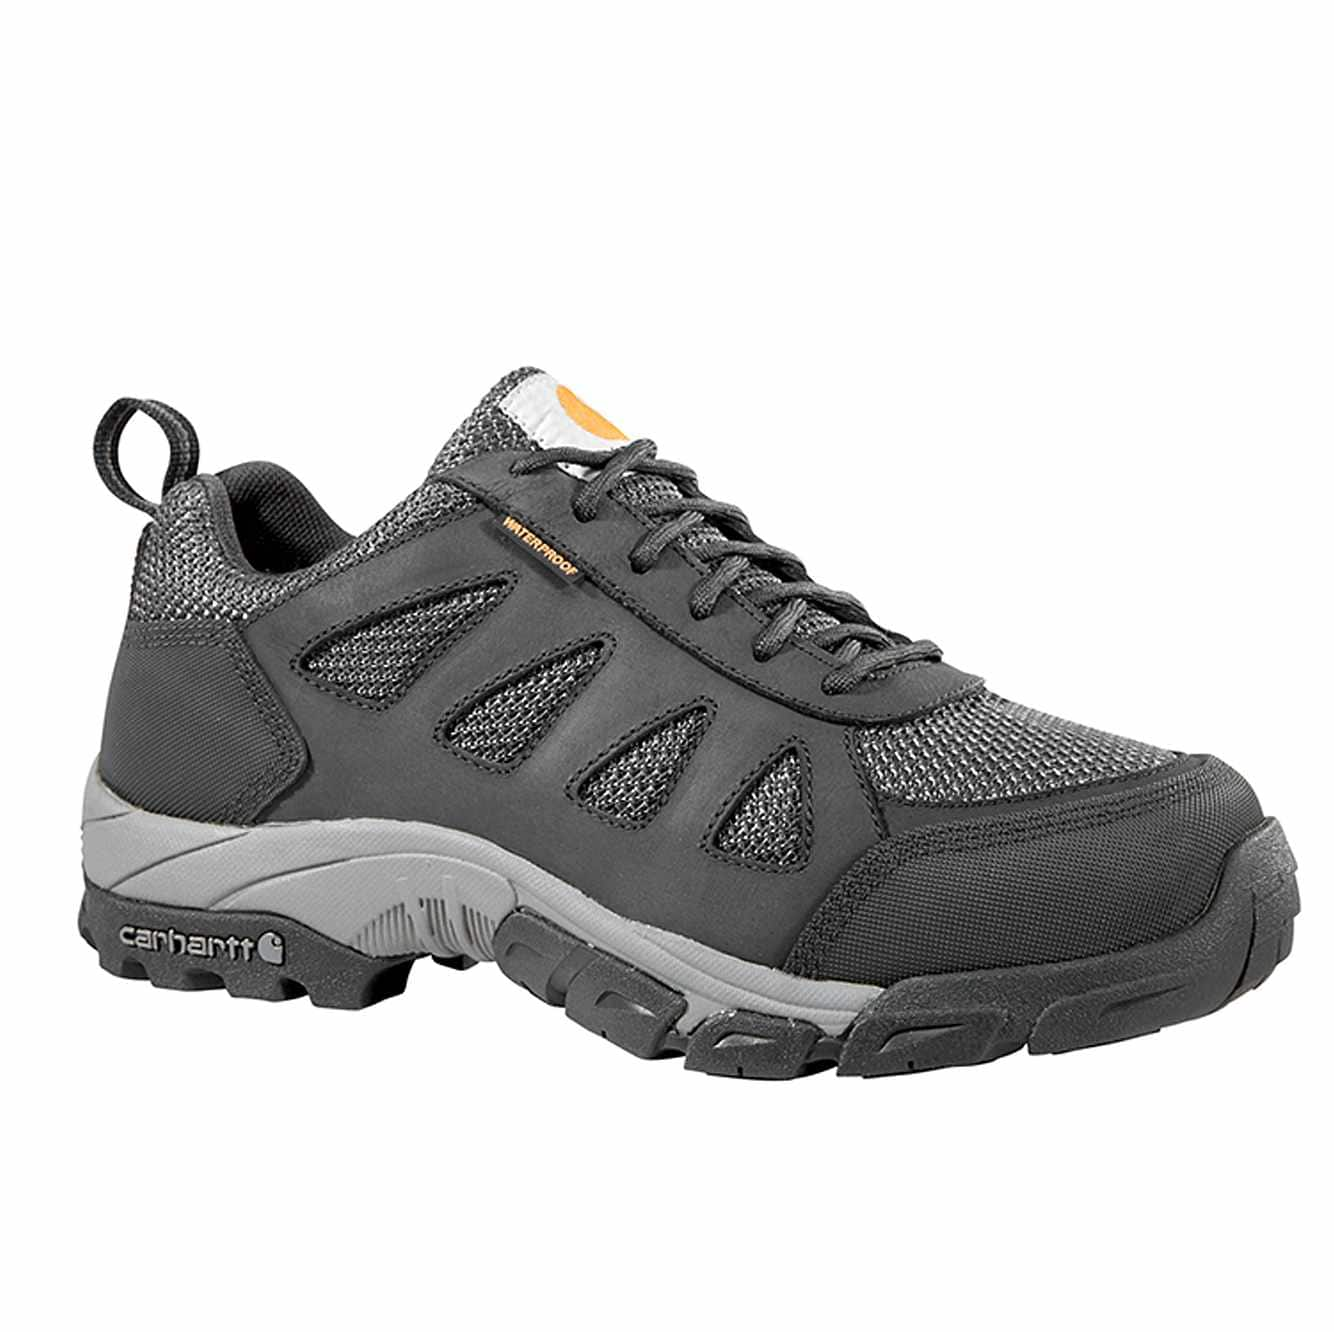 Picture of Lightweight Low Non-Safety Toe Work Hiker in Black Leather and Nylon